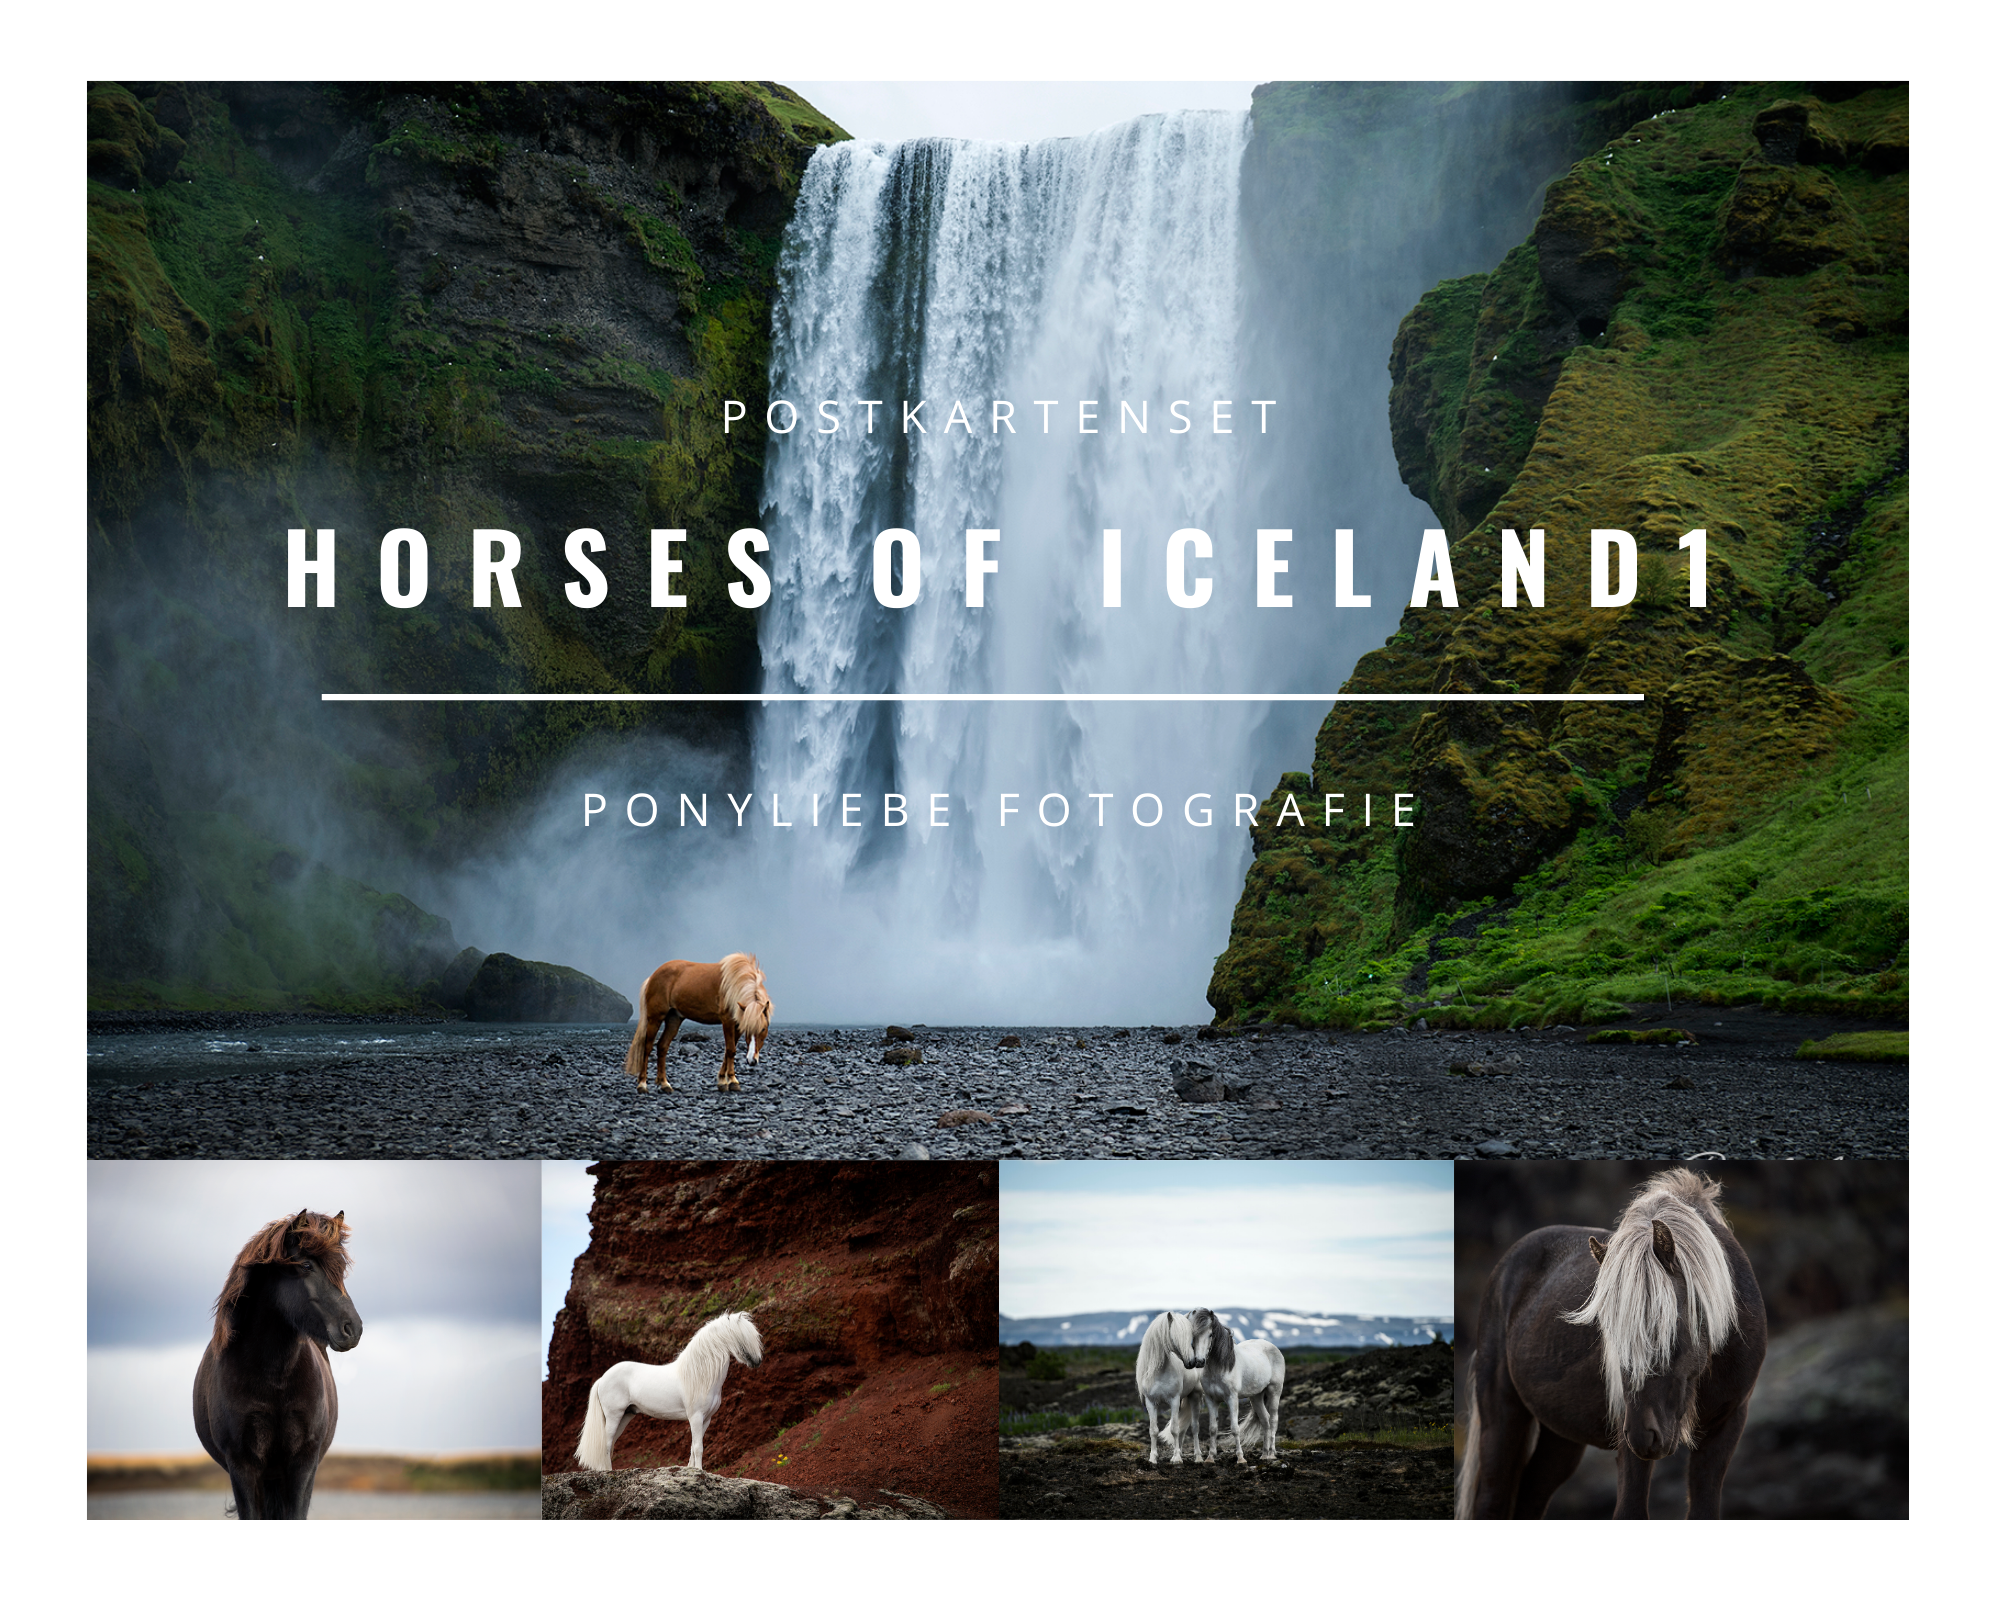 Postkarten Set- Horses of Iceland 1-0